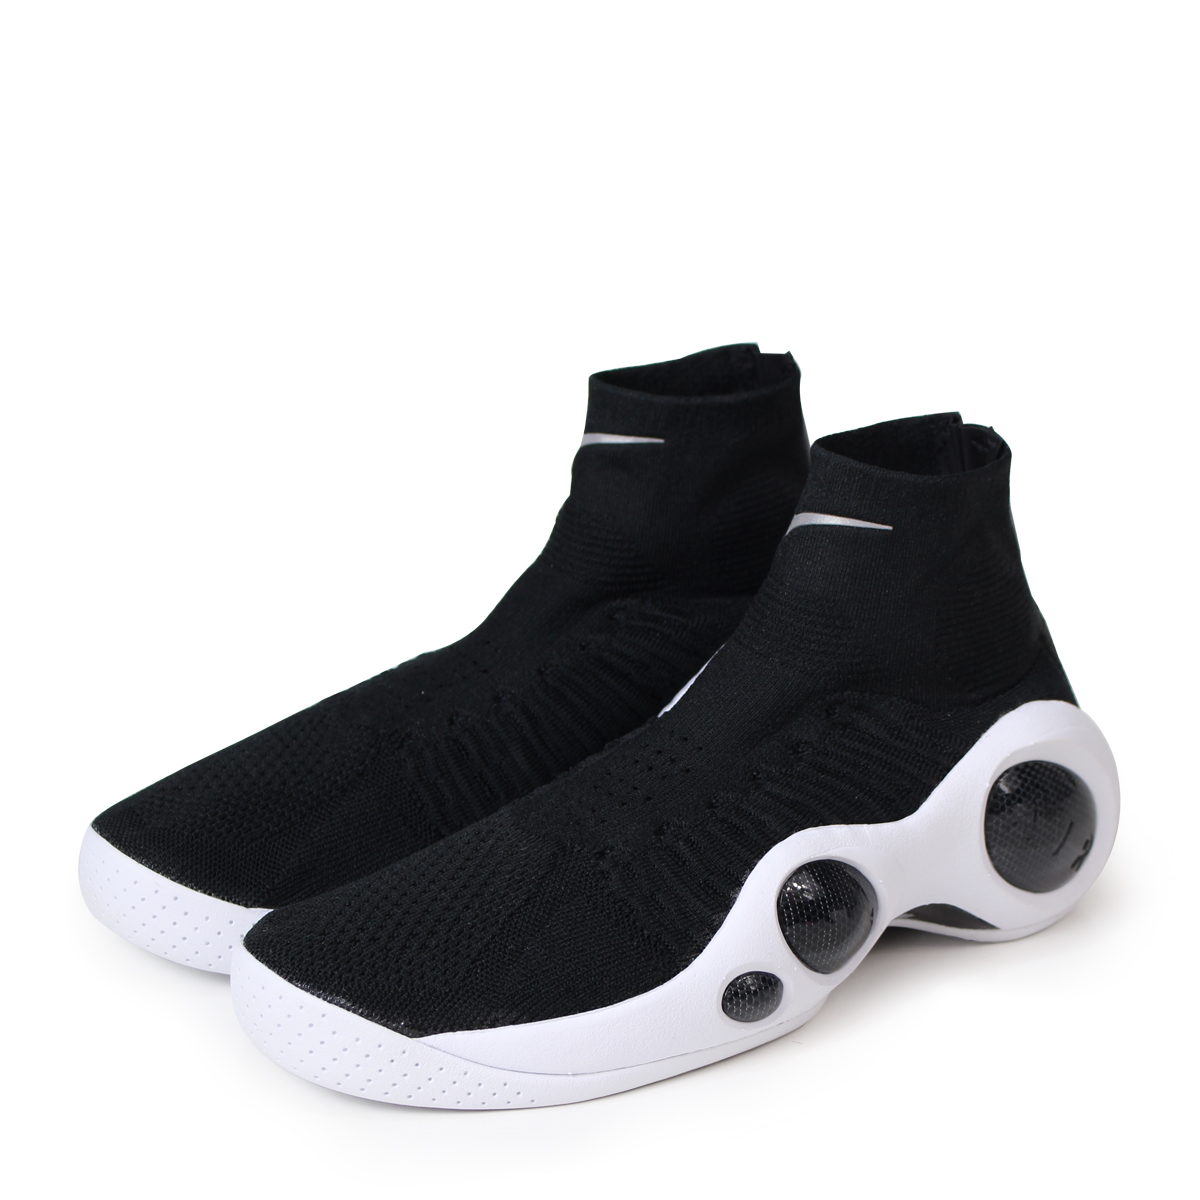 0691643431c0 ALLSPORTS  NIKE ZOOM FLIGHT BONAFIDE Nike zoom flight VONA Fido ...